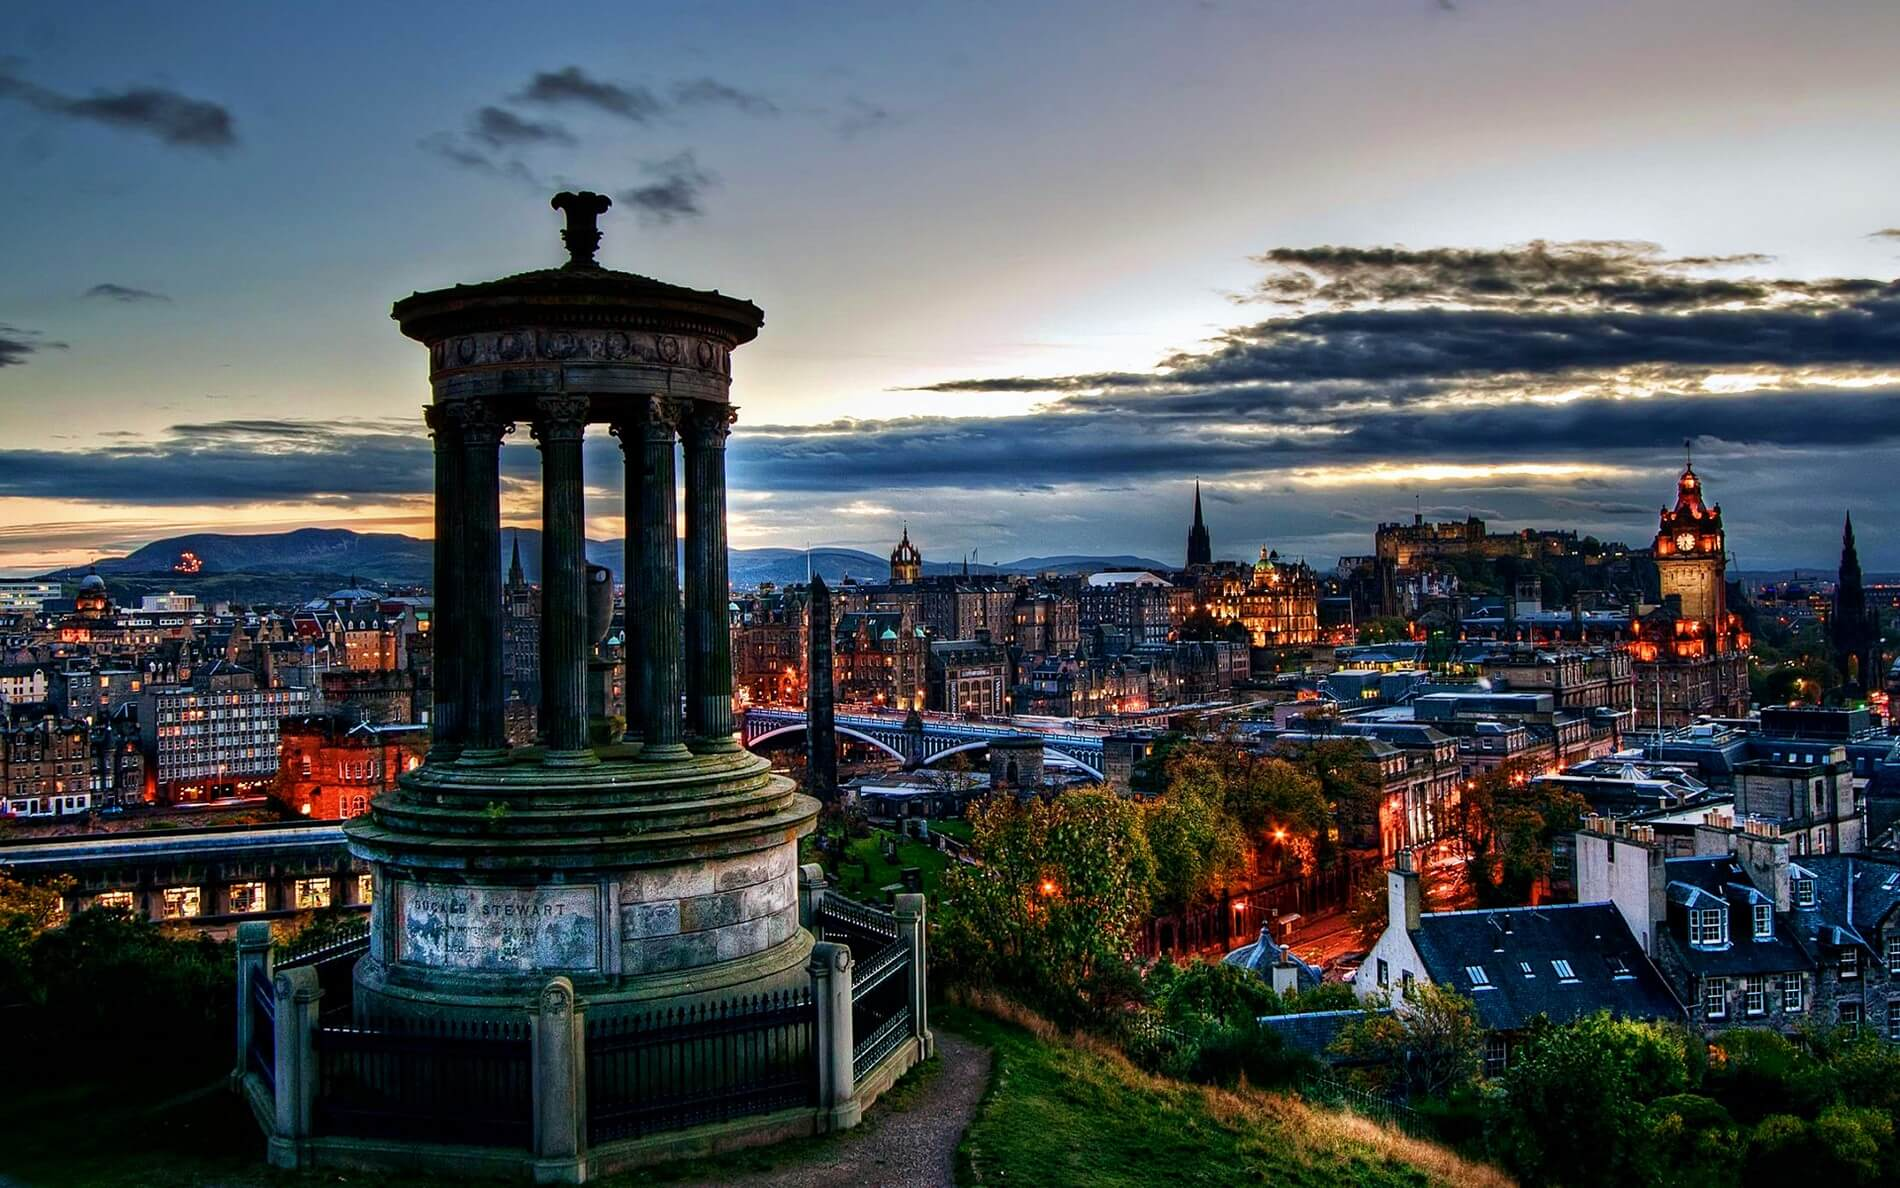 Edinburgh - City View